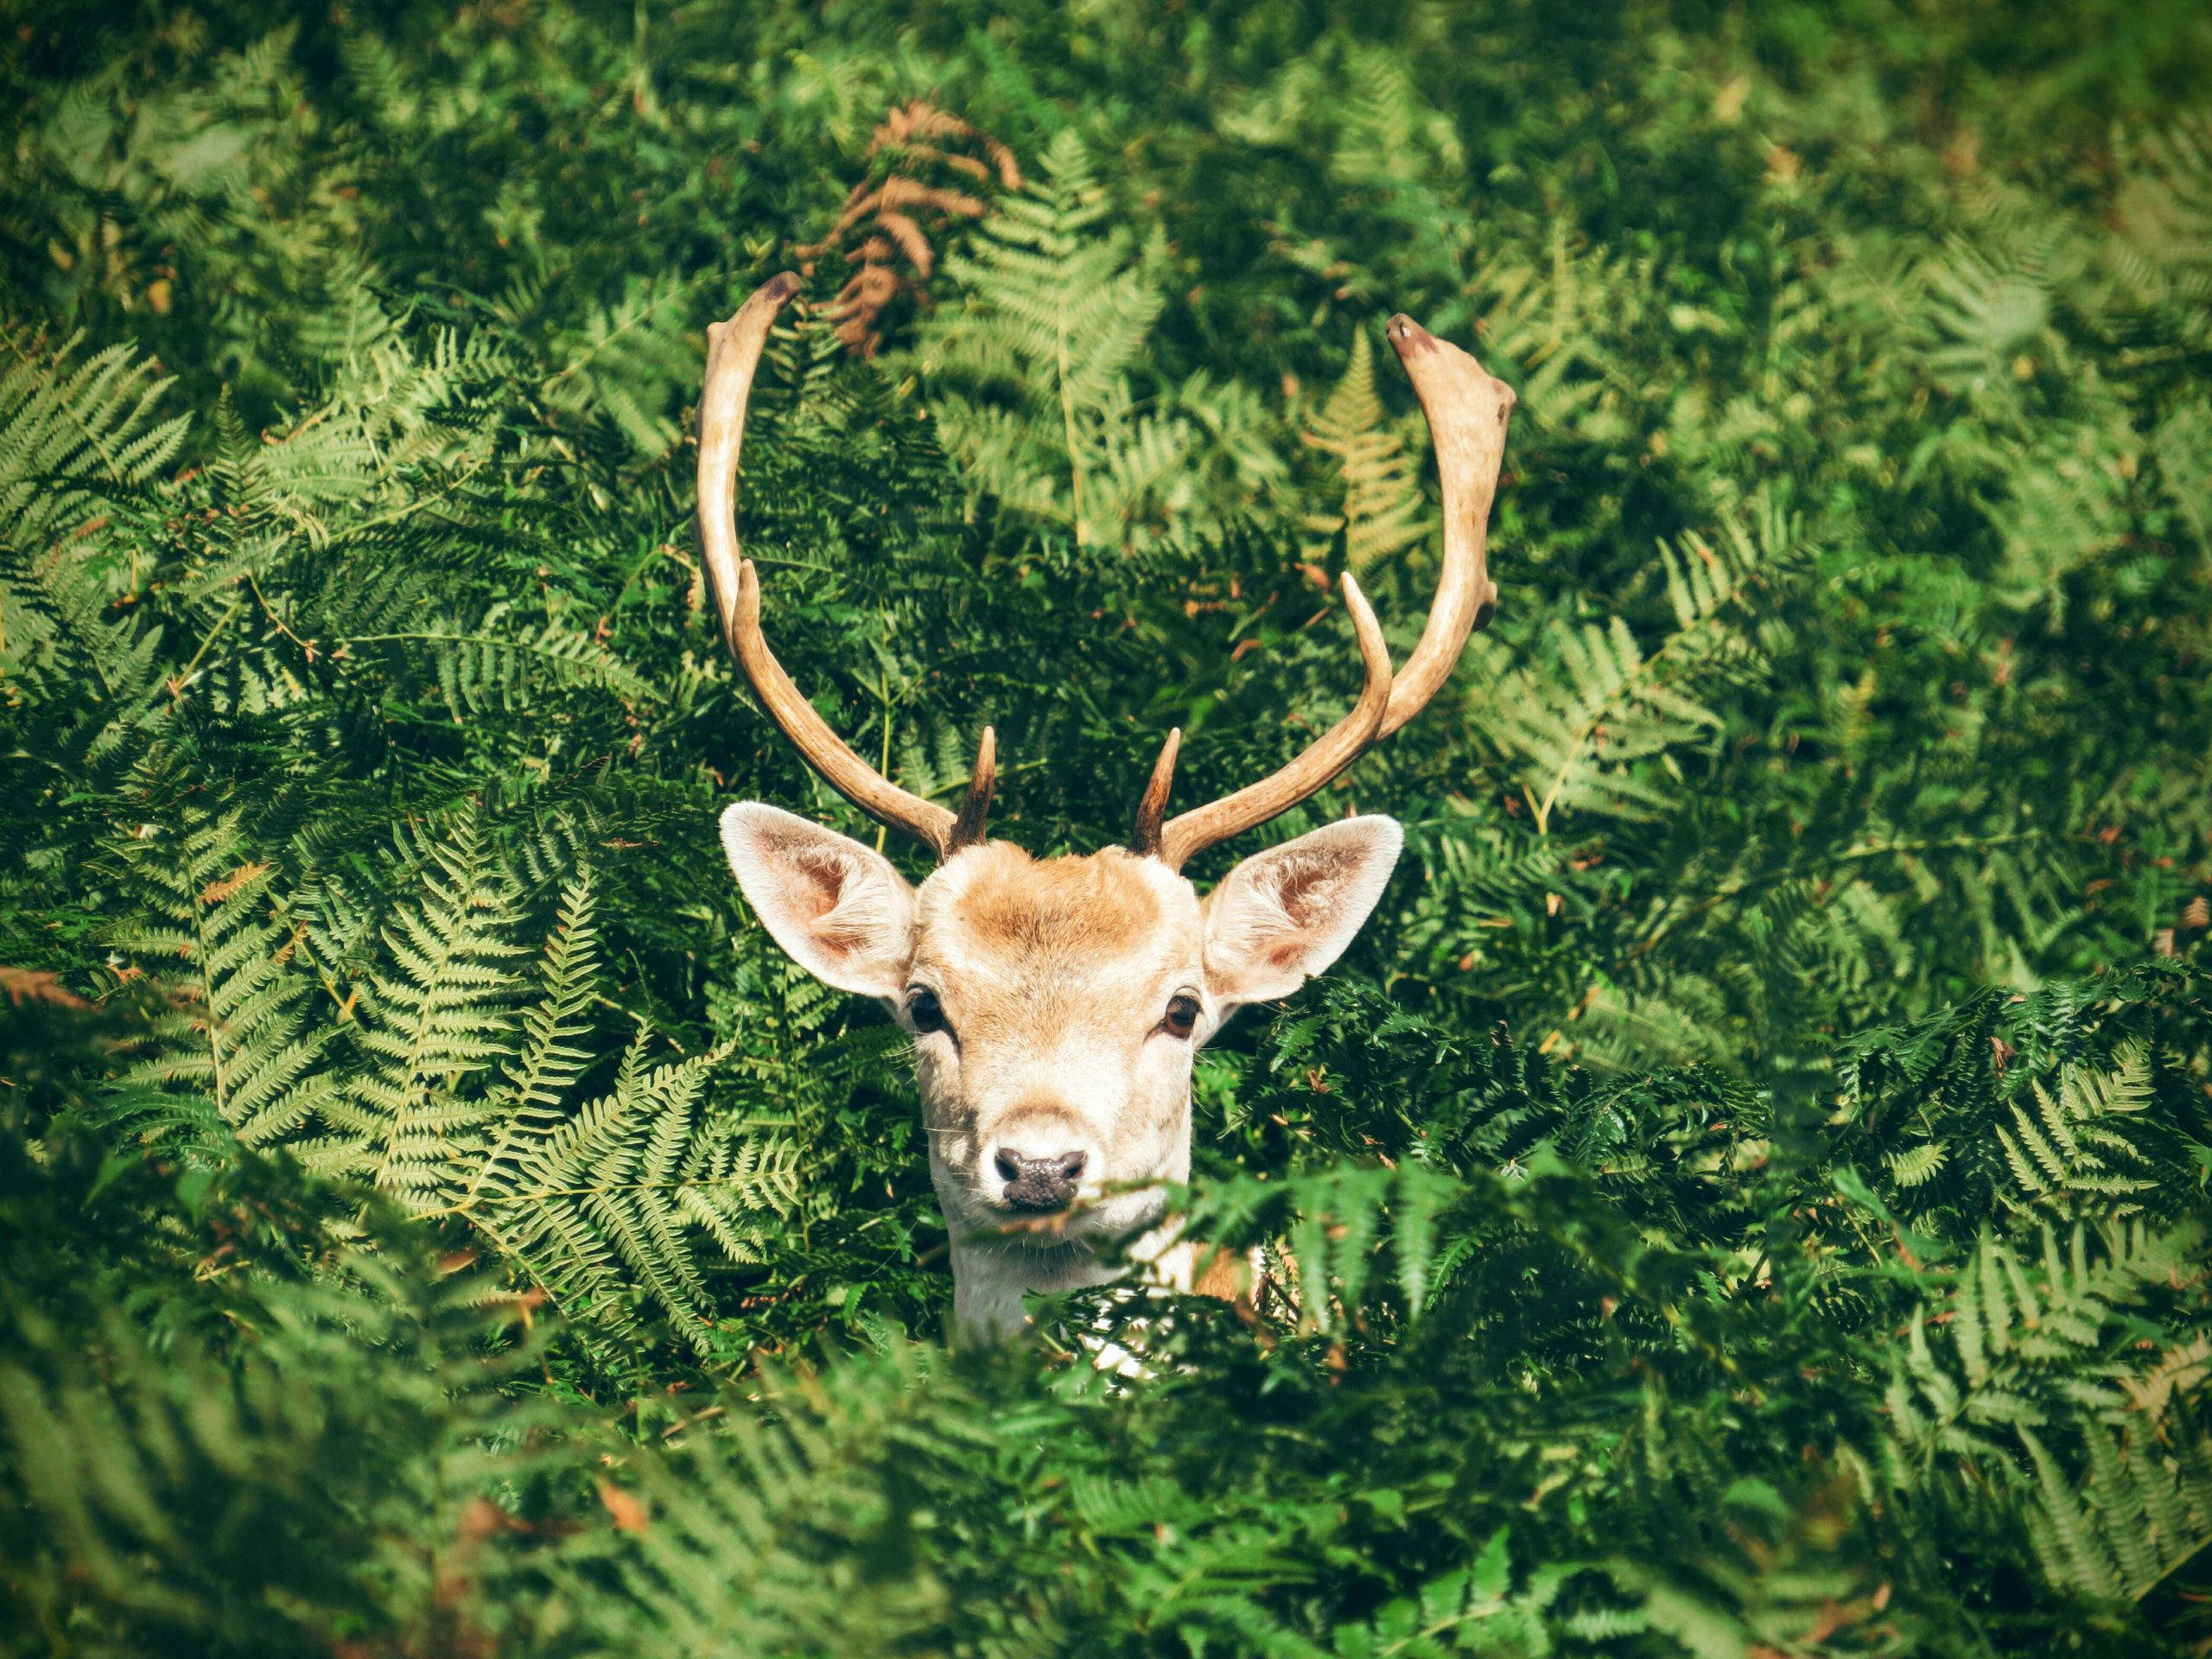 wallpaper Brown and white deer surrounded by green plants